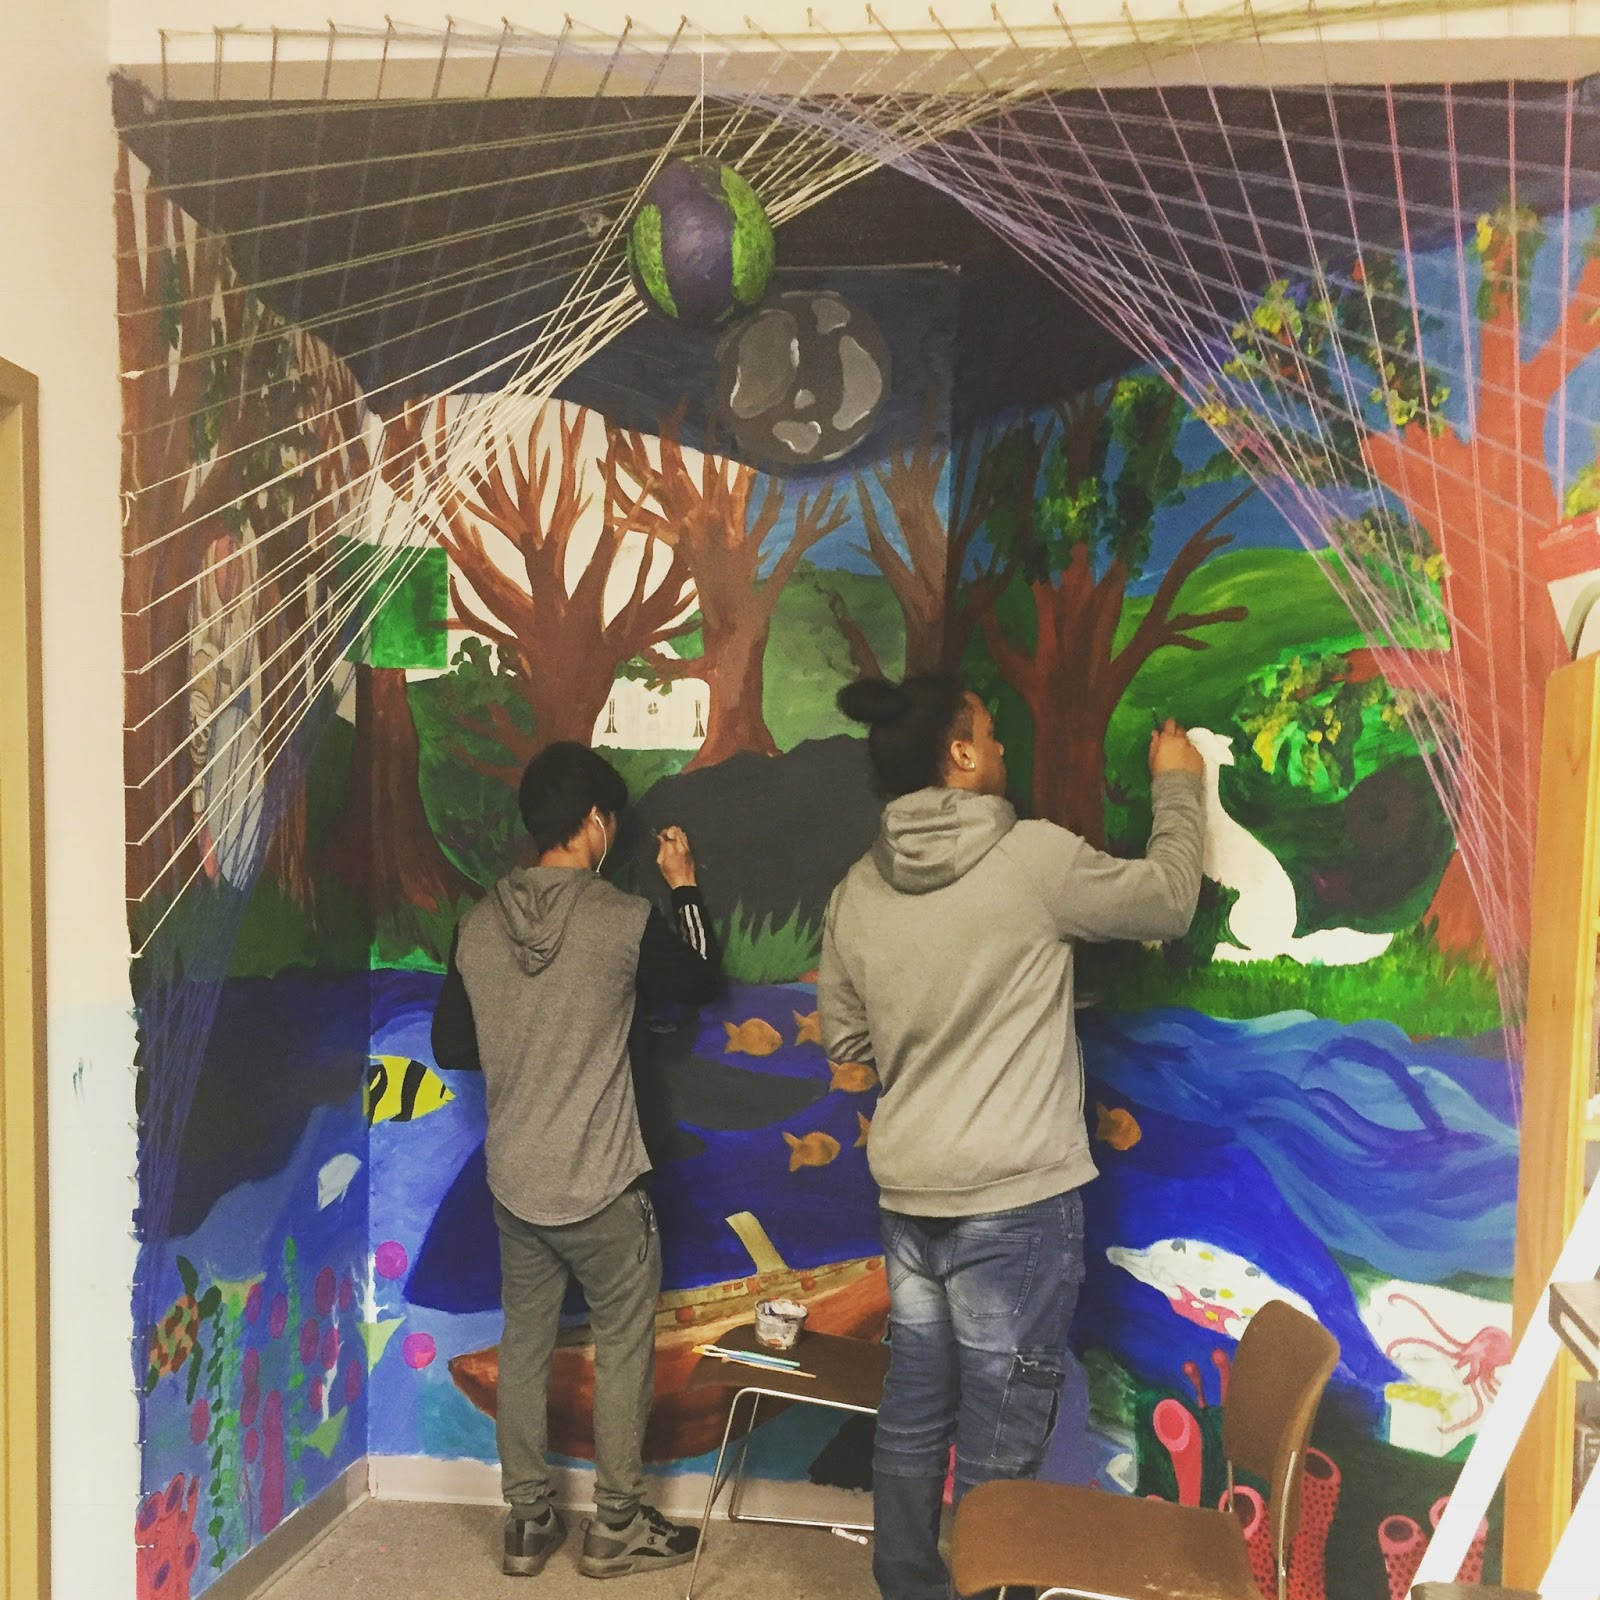 Ledyard Students creating a new world for themselves